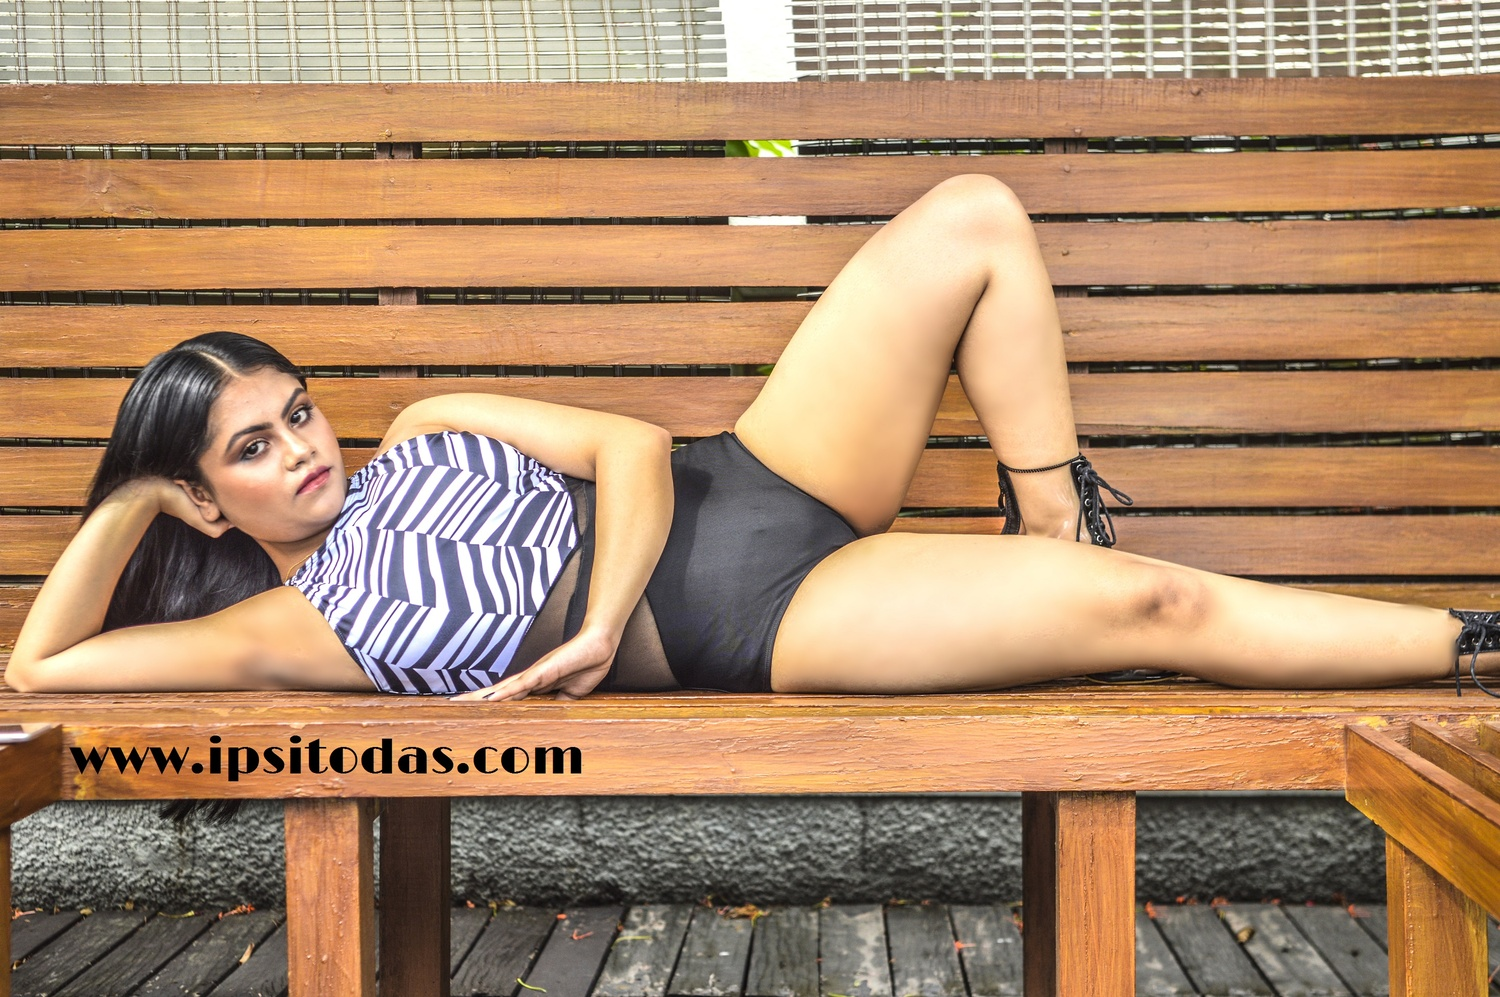 lingerei swimsuit photographed by Ipsito Das by Ipsito Das